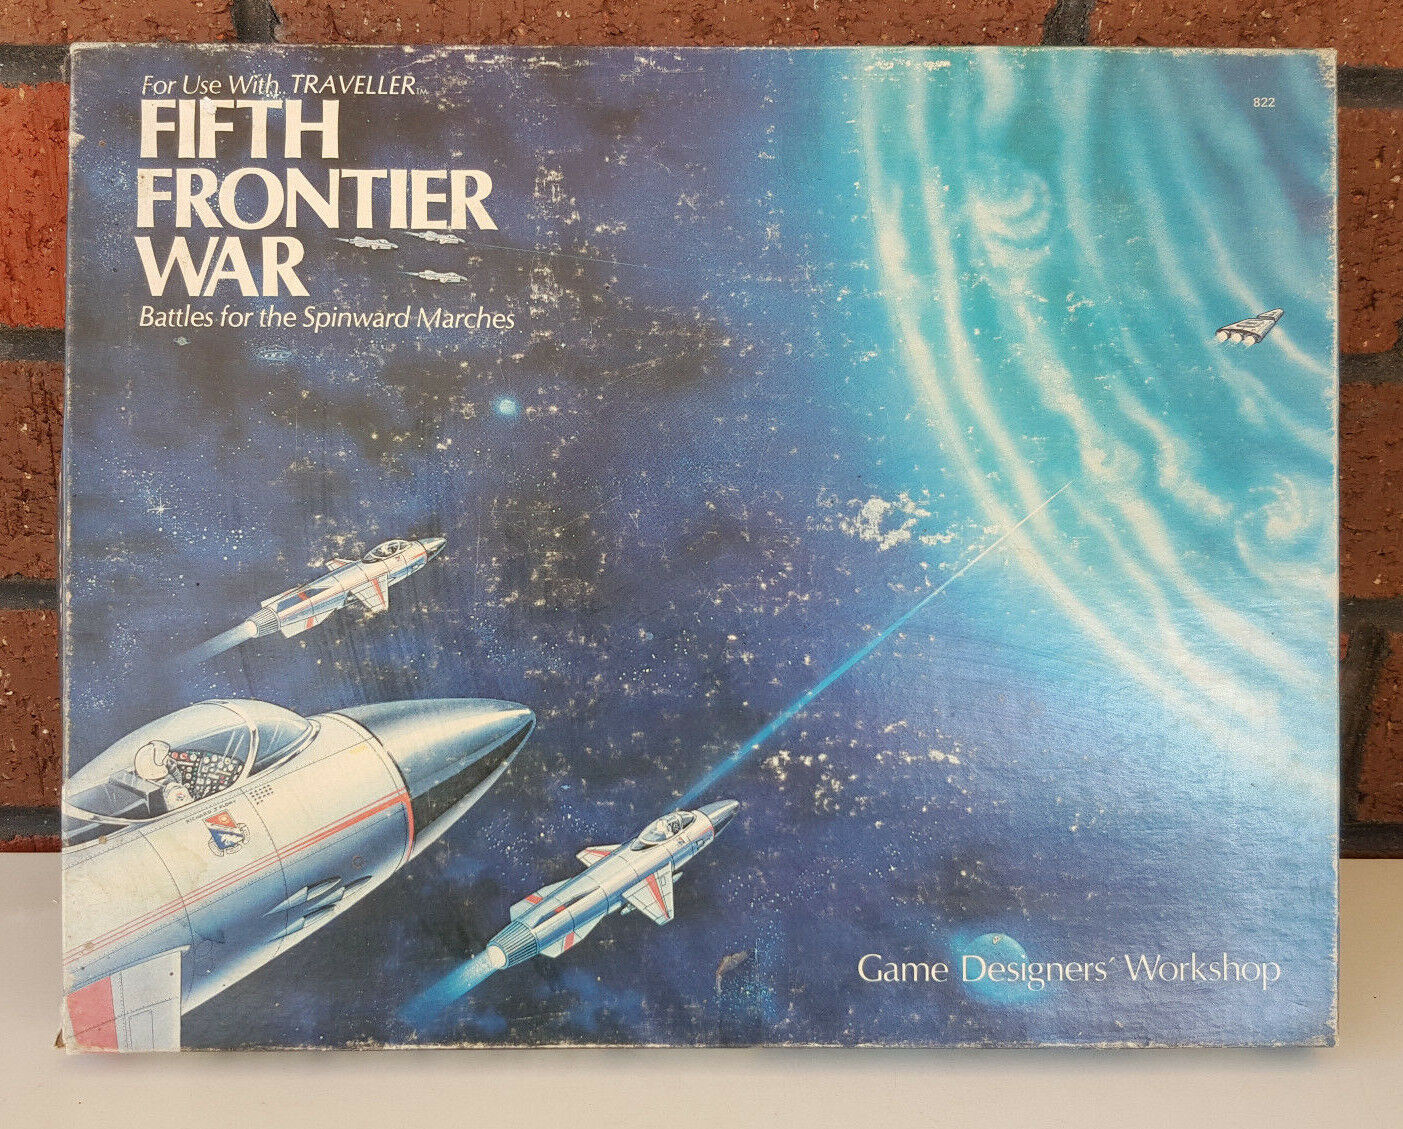 Fifth Frontier War Battles for Spinward Marches - GDW Traveller Boardgame 1981